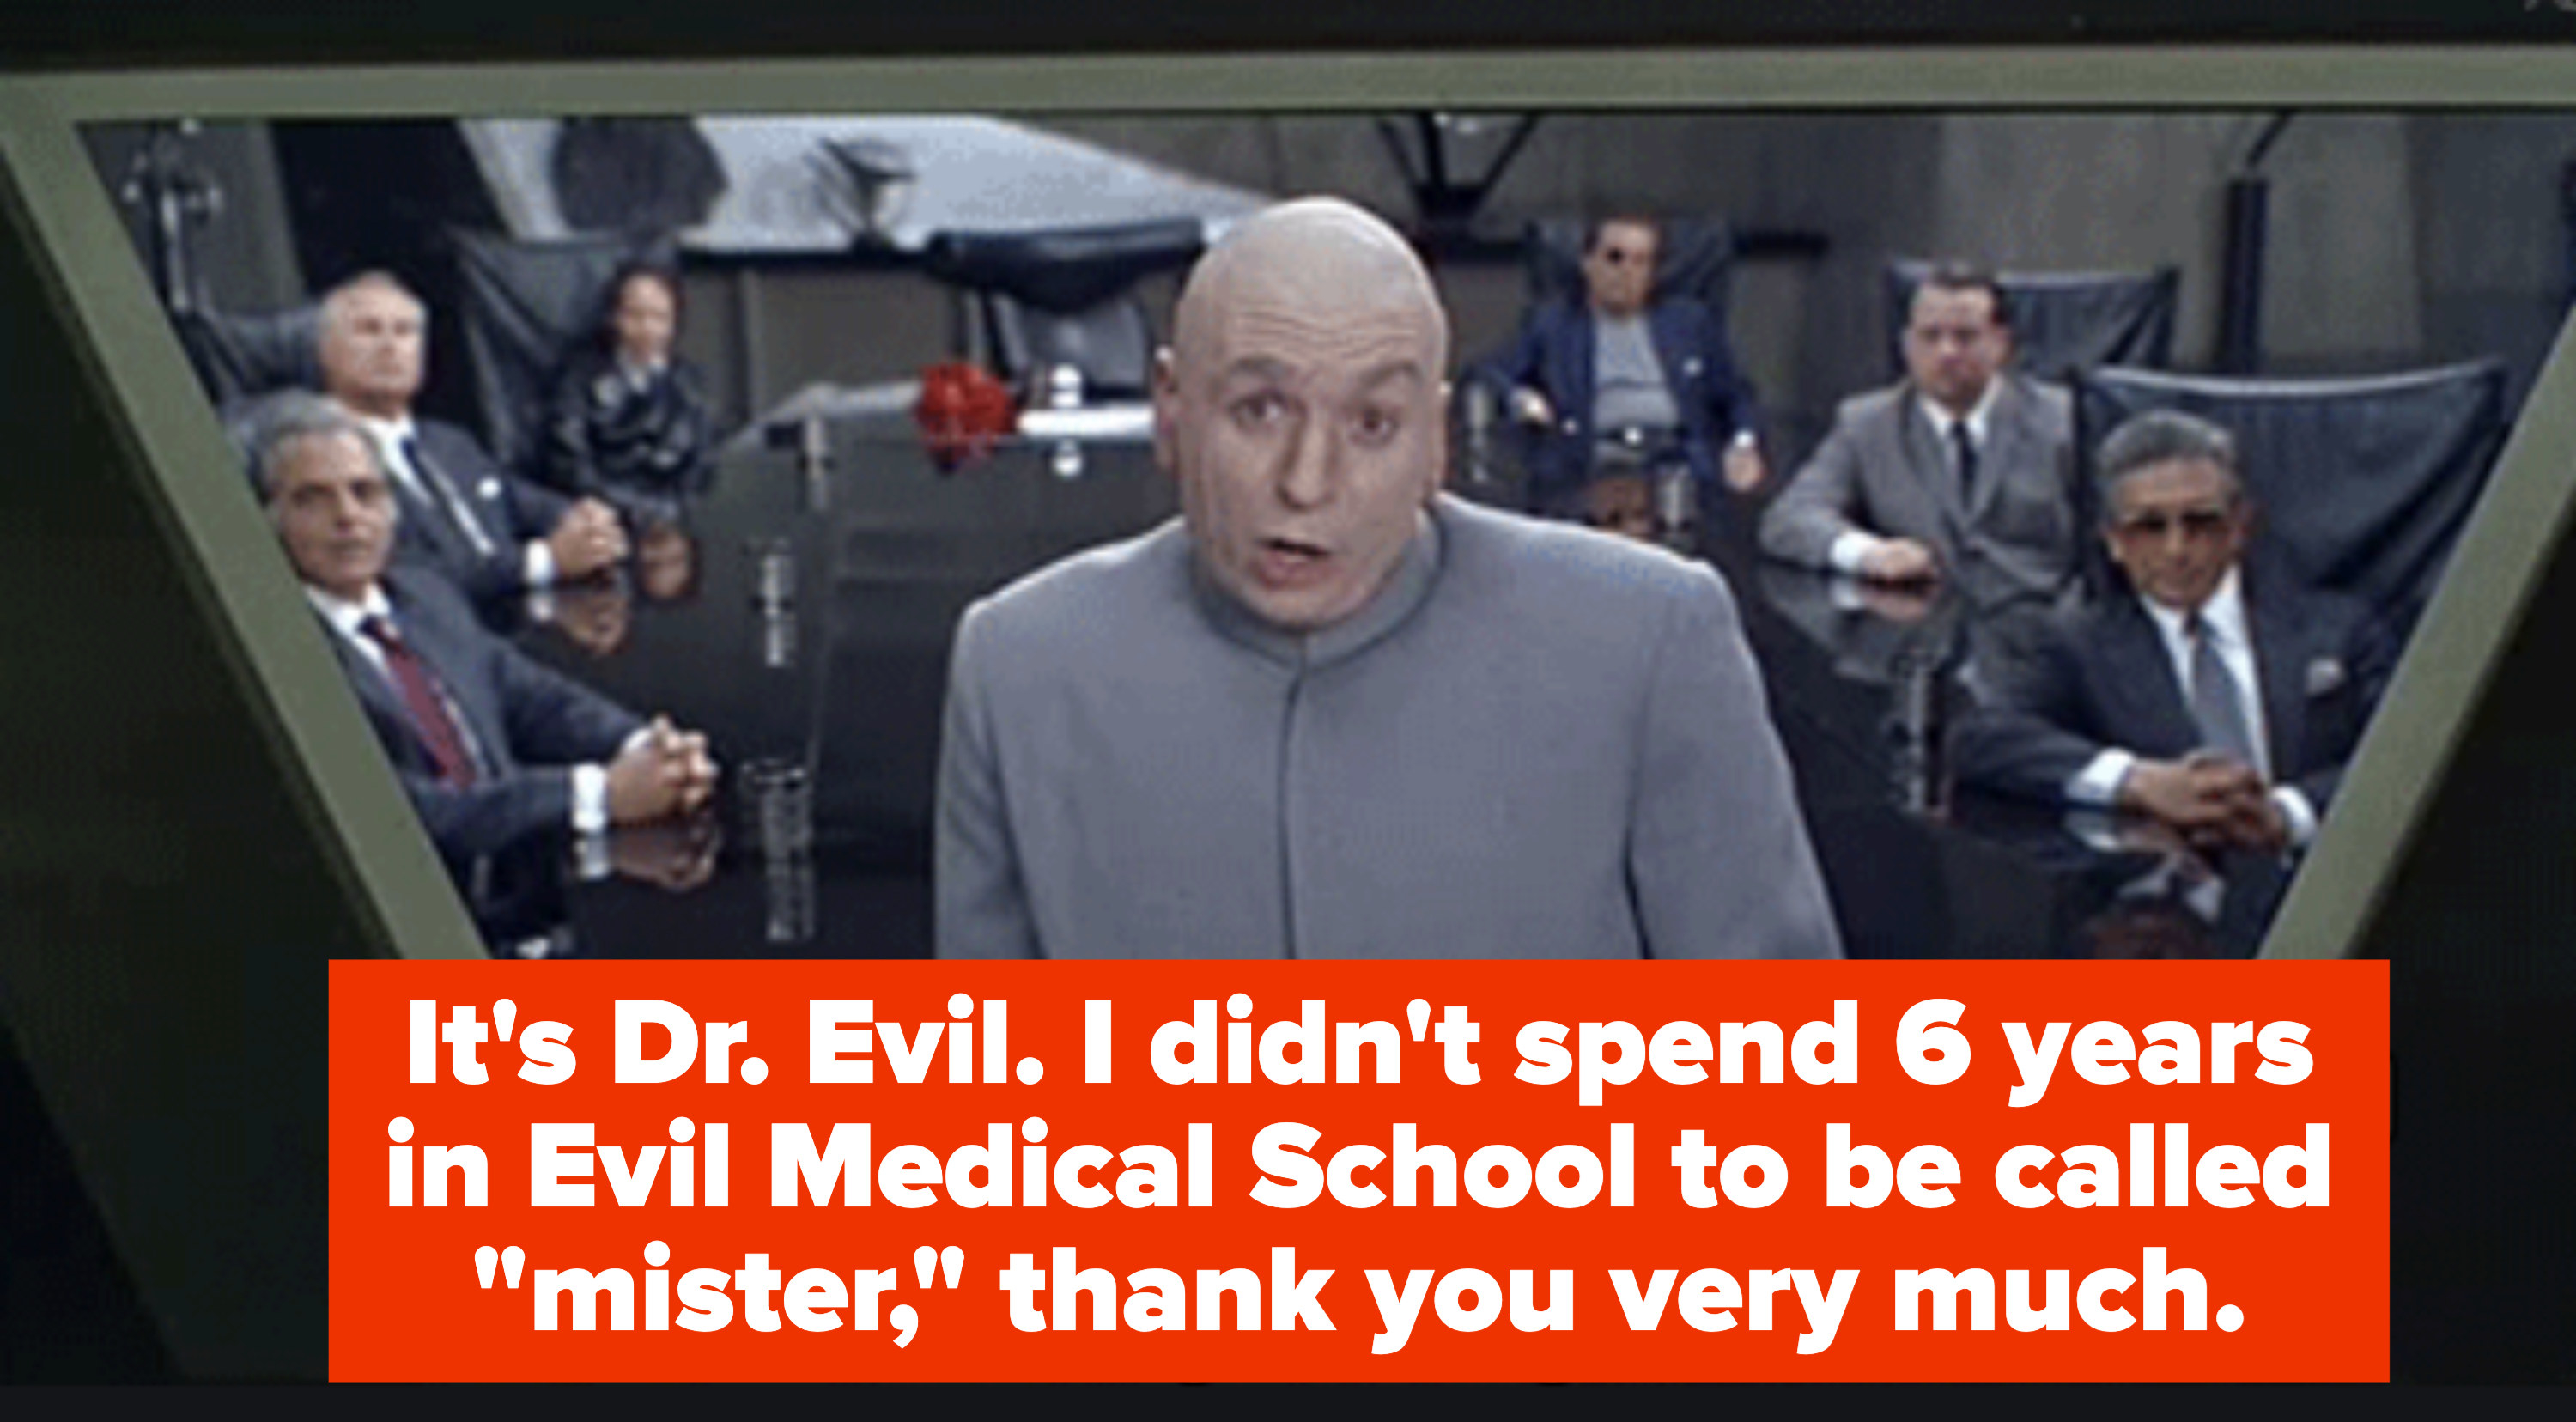 """It's Dr. Evil, I didn't spend 6 years in Evil Medical School to be called mister, thank you never much"""